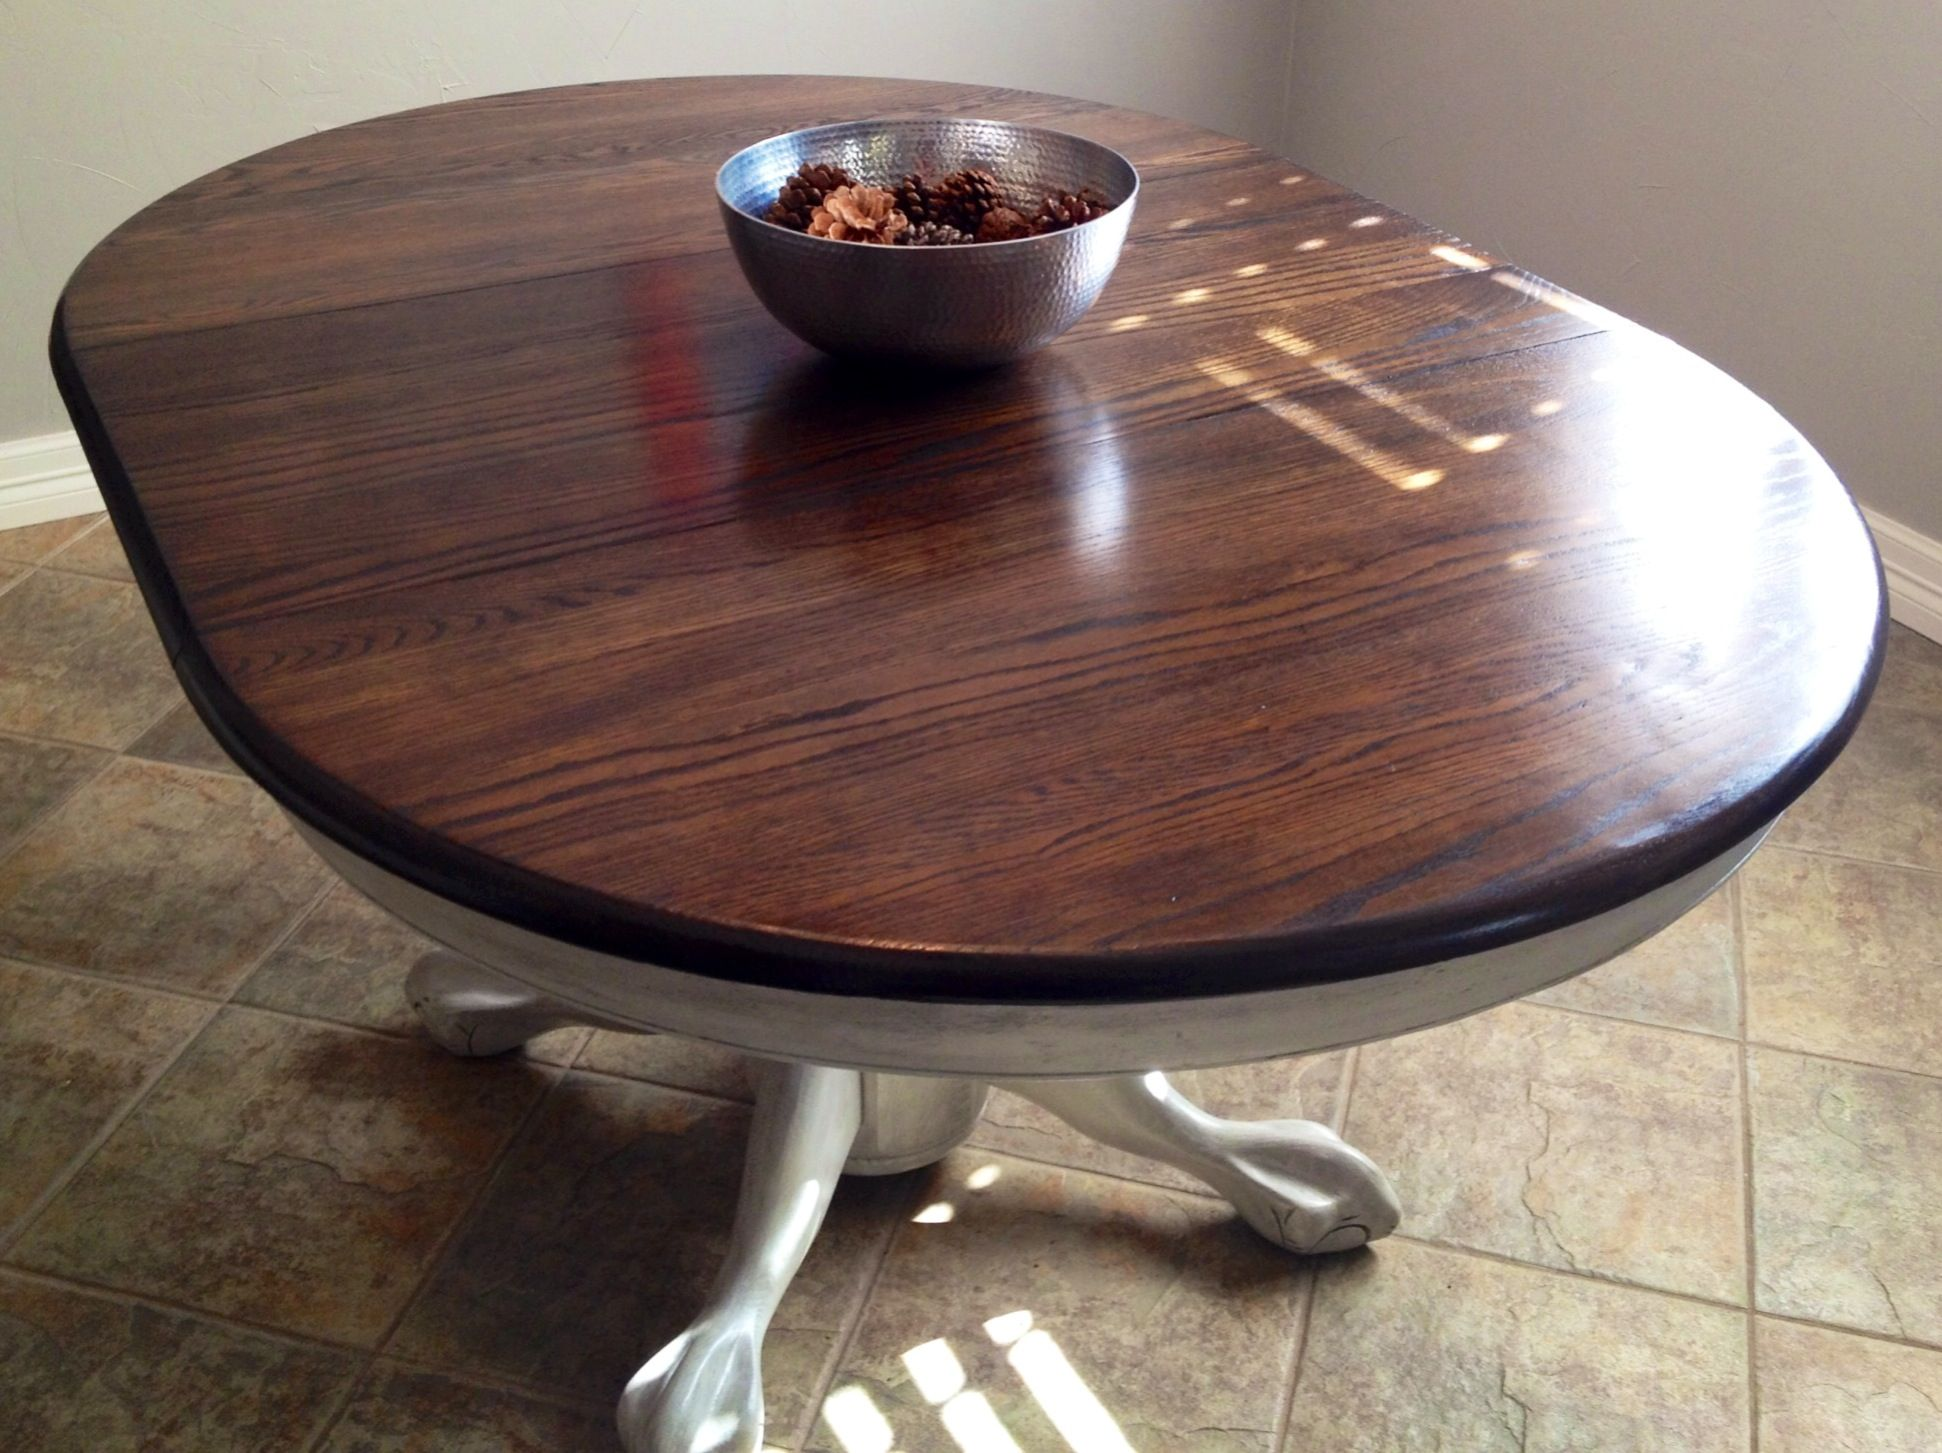 Antique Claw Foot Pedestal Table Refinished In White Paint On The